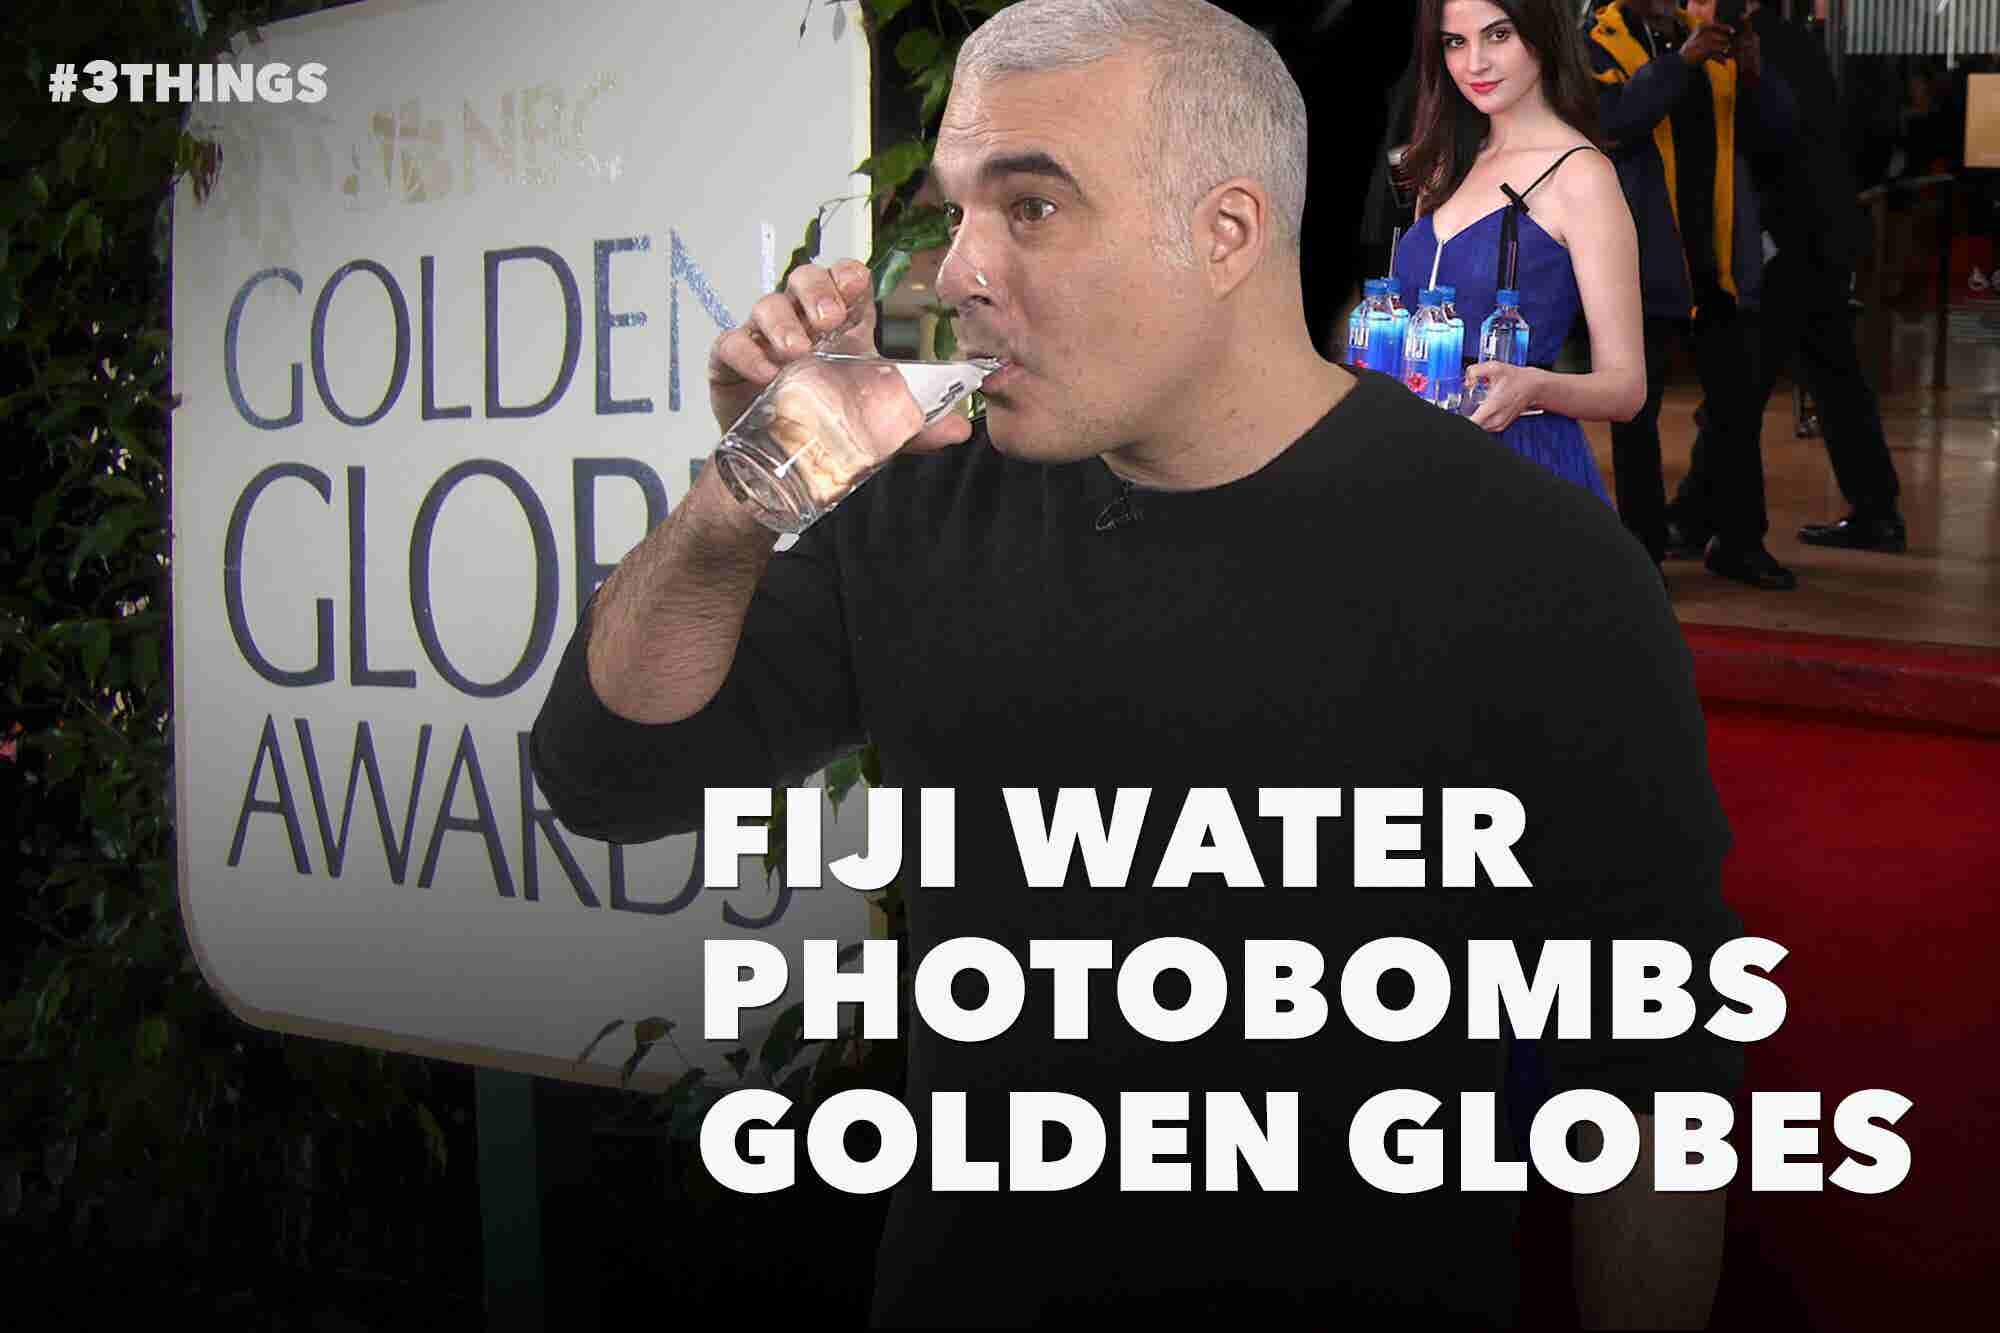 Fiji Water Photobombs Golden Globes in Spectacular Fashion (60 Second Video)